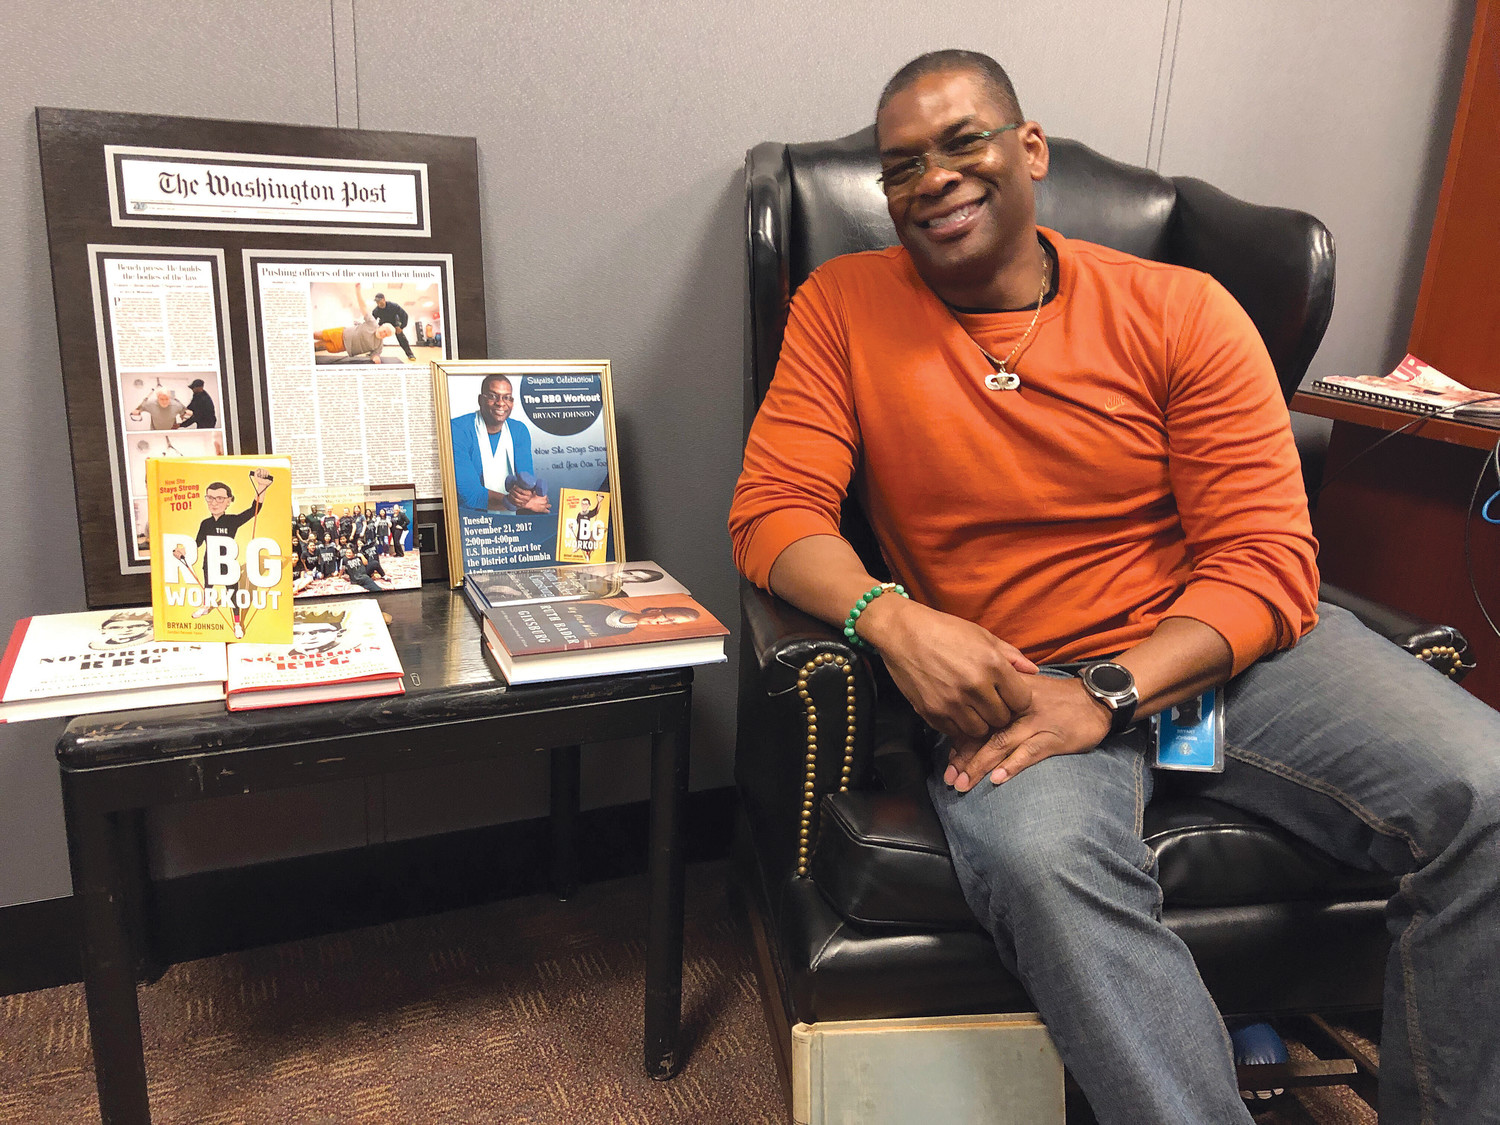 Bryant Johnson, Ruth Bader Ginsburg's personal trainer, in his office in the U.S. District Court in Washington, D.C., Dec. 19, 2018.